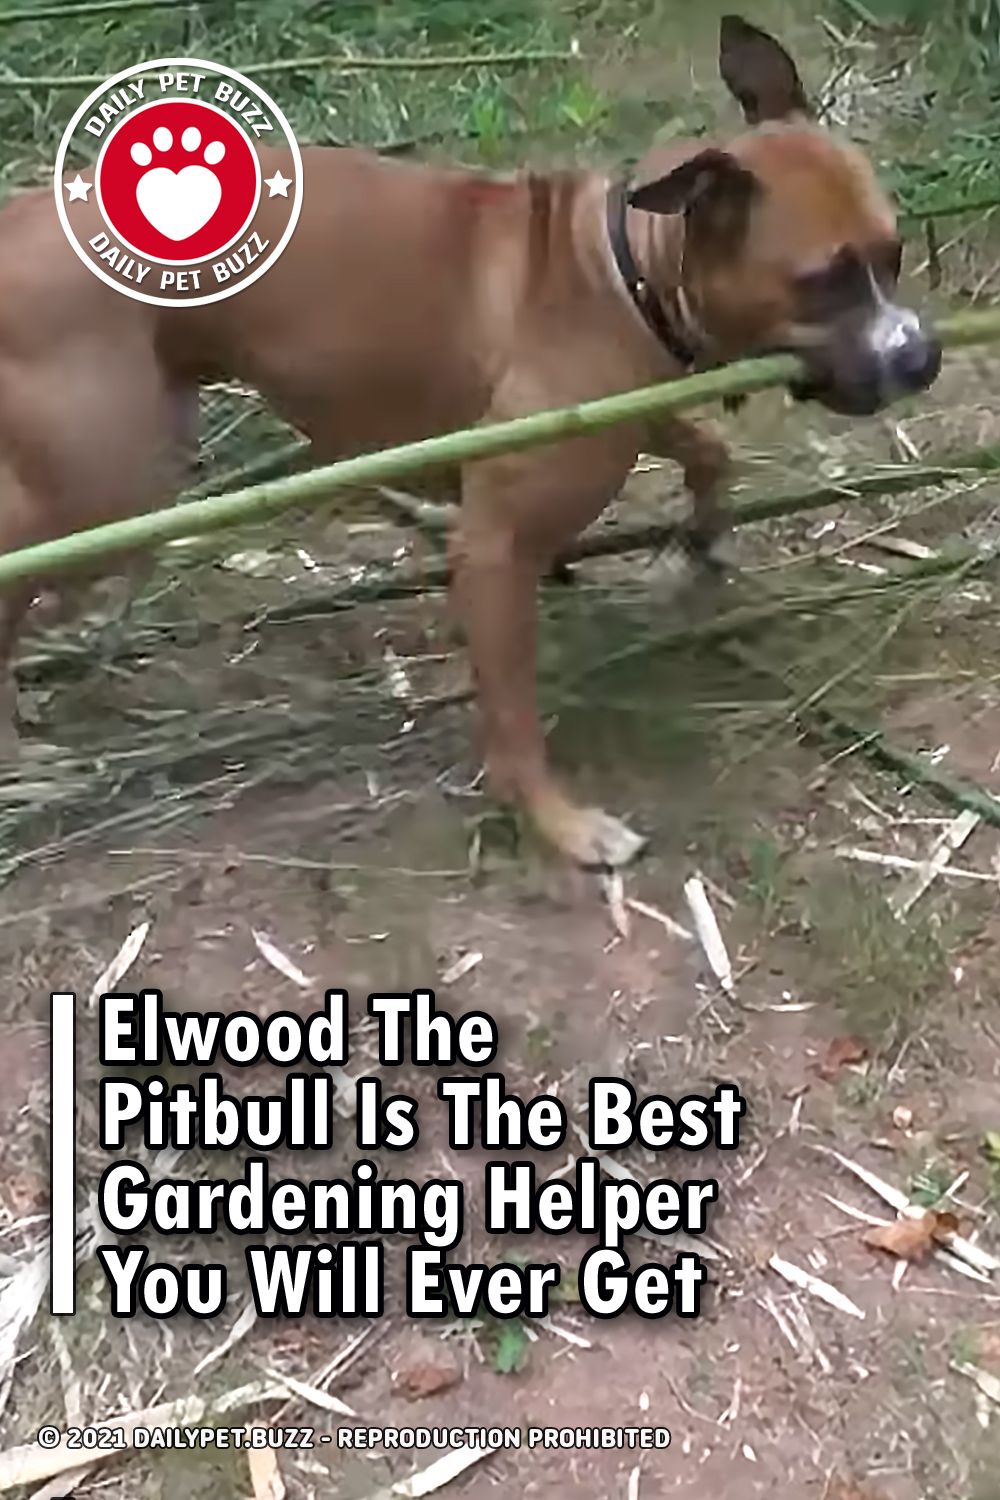 Elwood The Pitbull Is The Best Gardening Helper You Will Ever Get